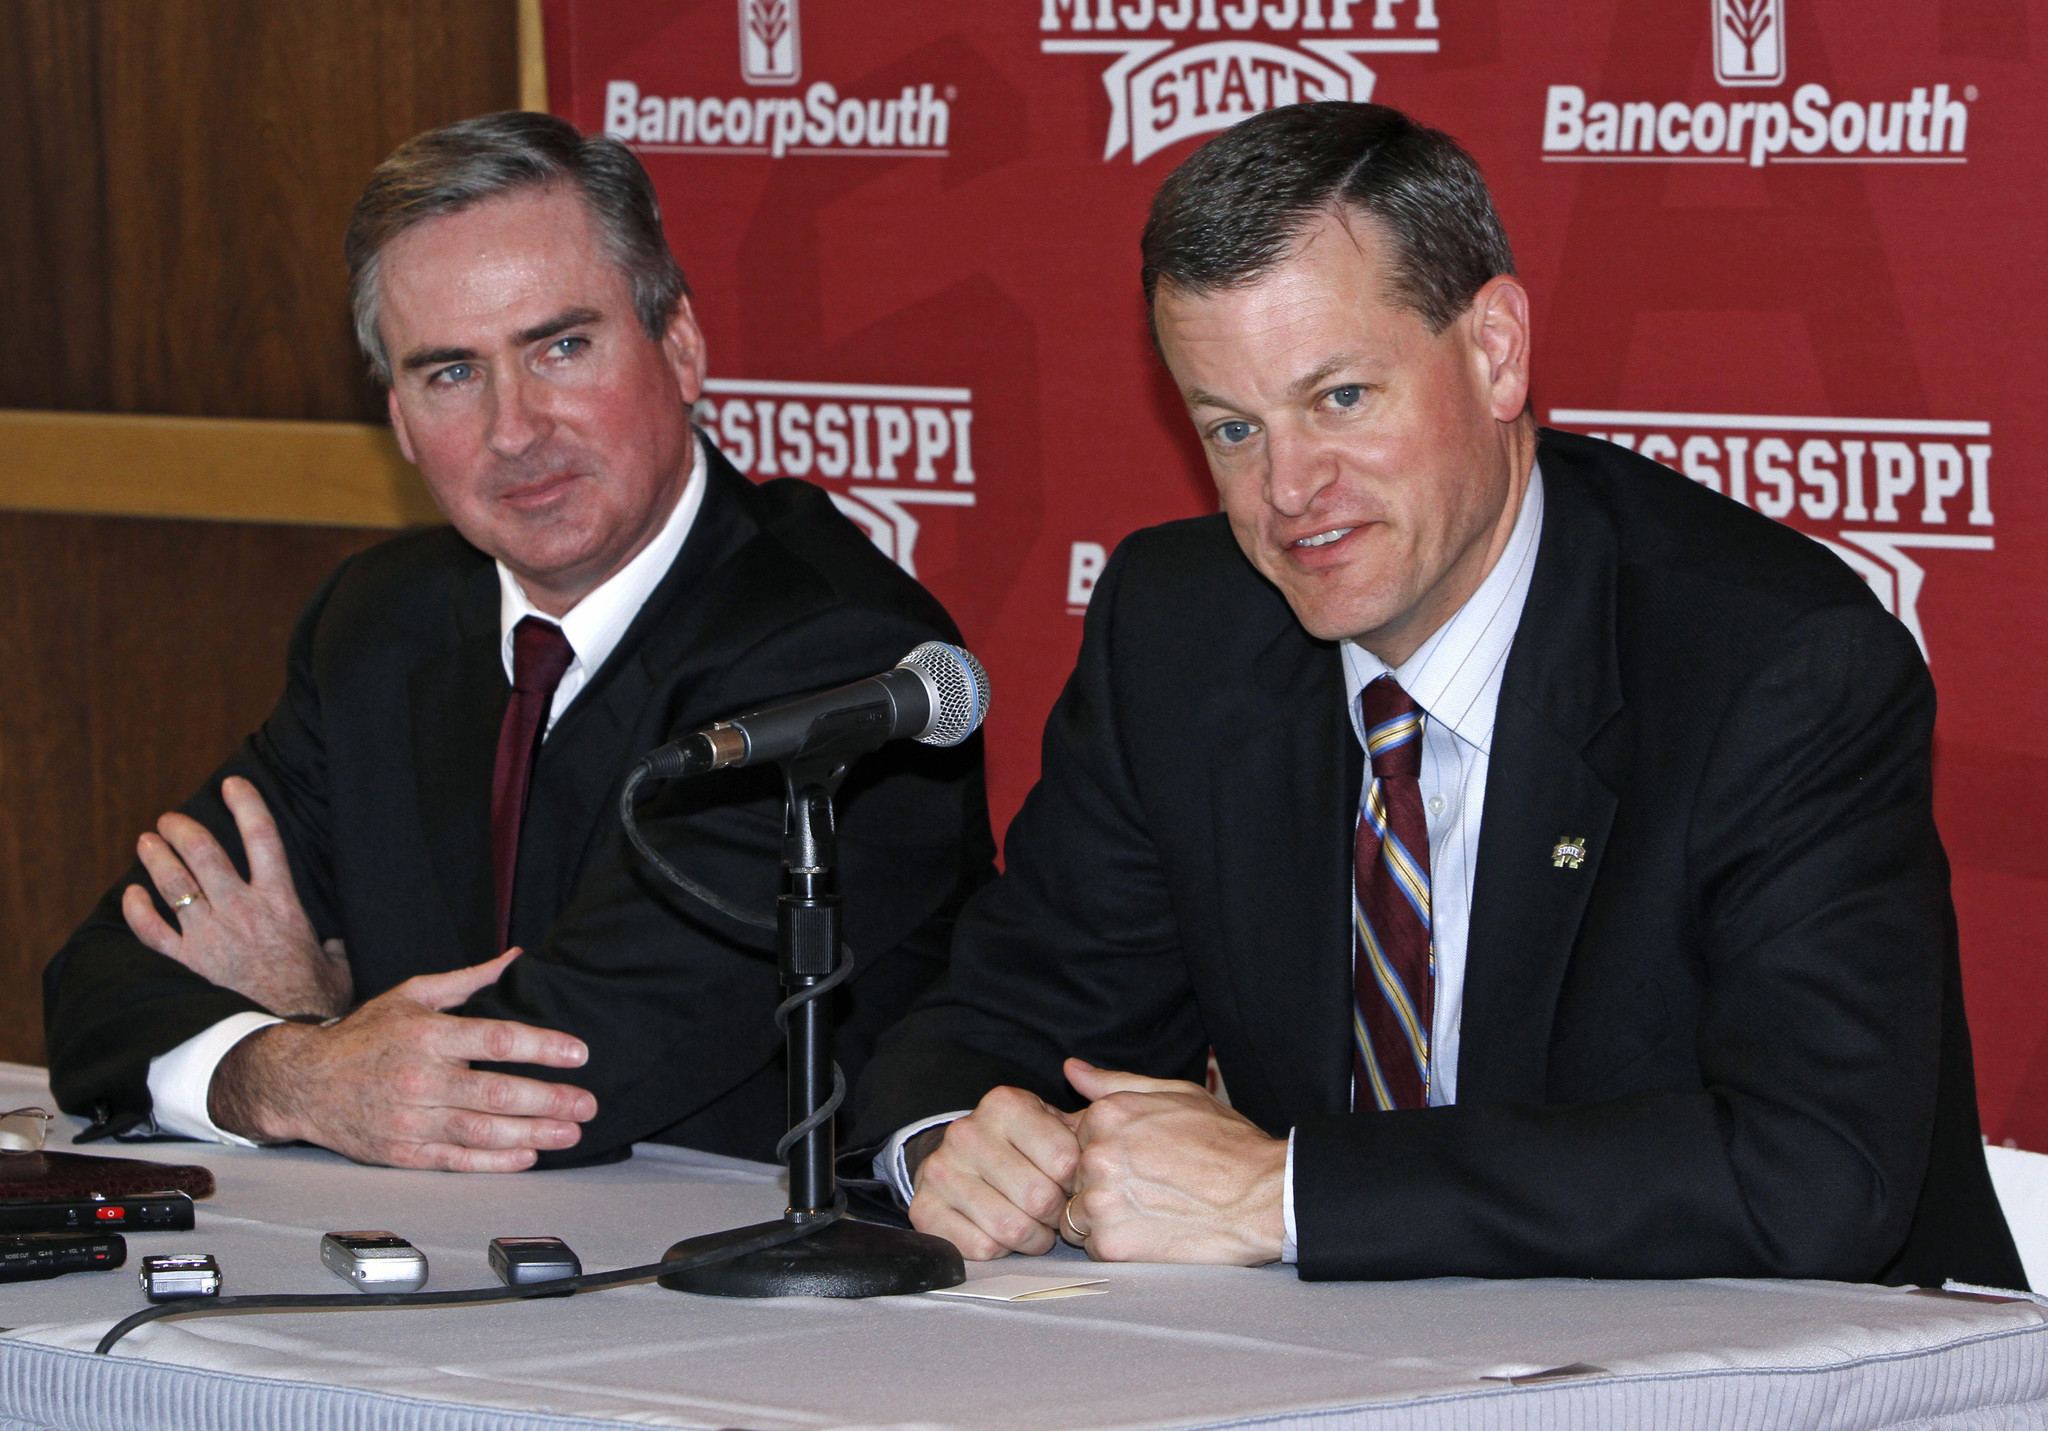 Gators to name scott stricklin new athletics director orlando sentinel